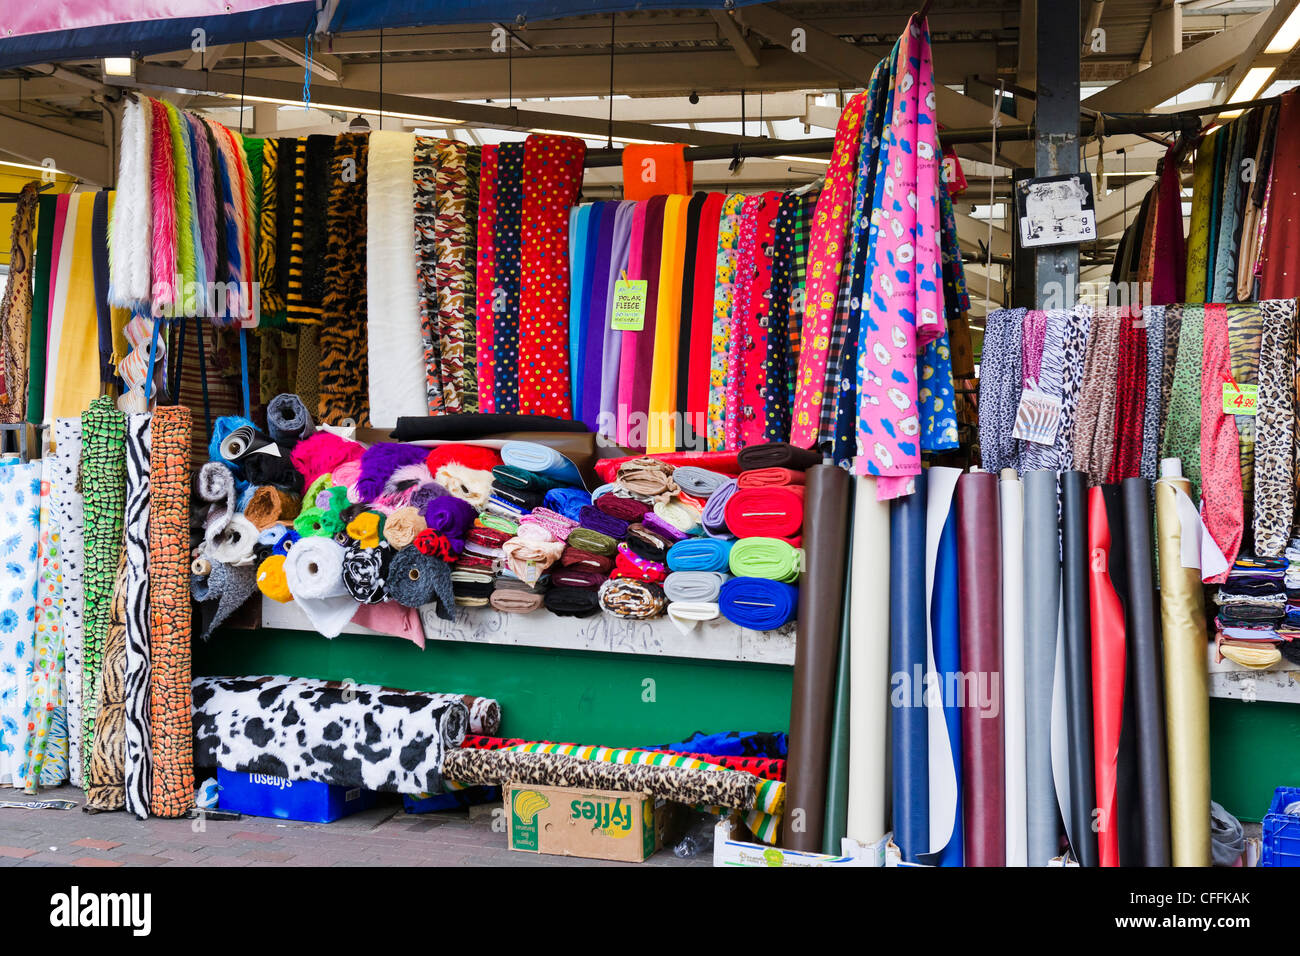 Colourful cloth for sale at the market in the city centre, Leicester, Leicestershire, England, UK - Stock Image